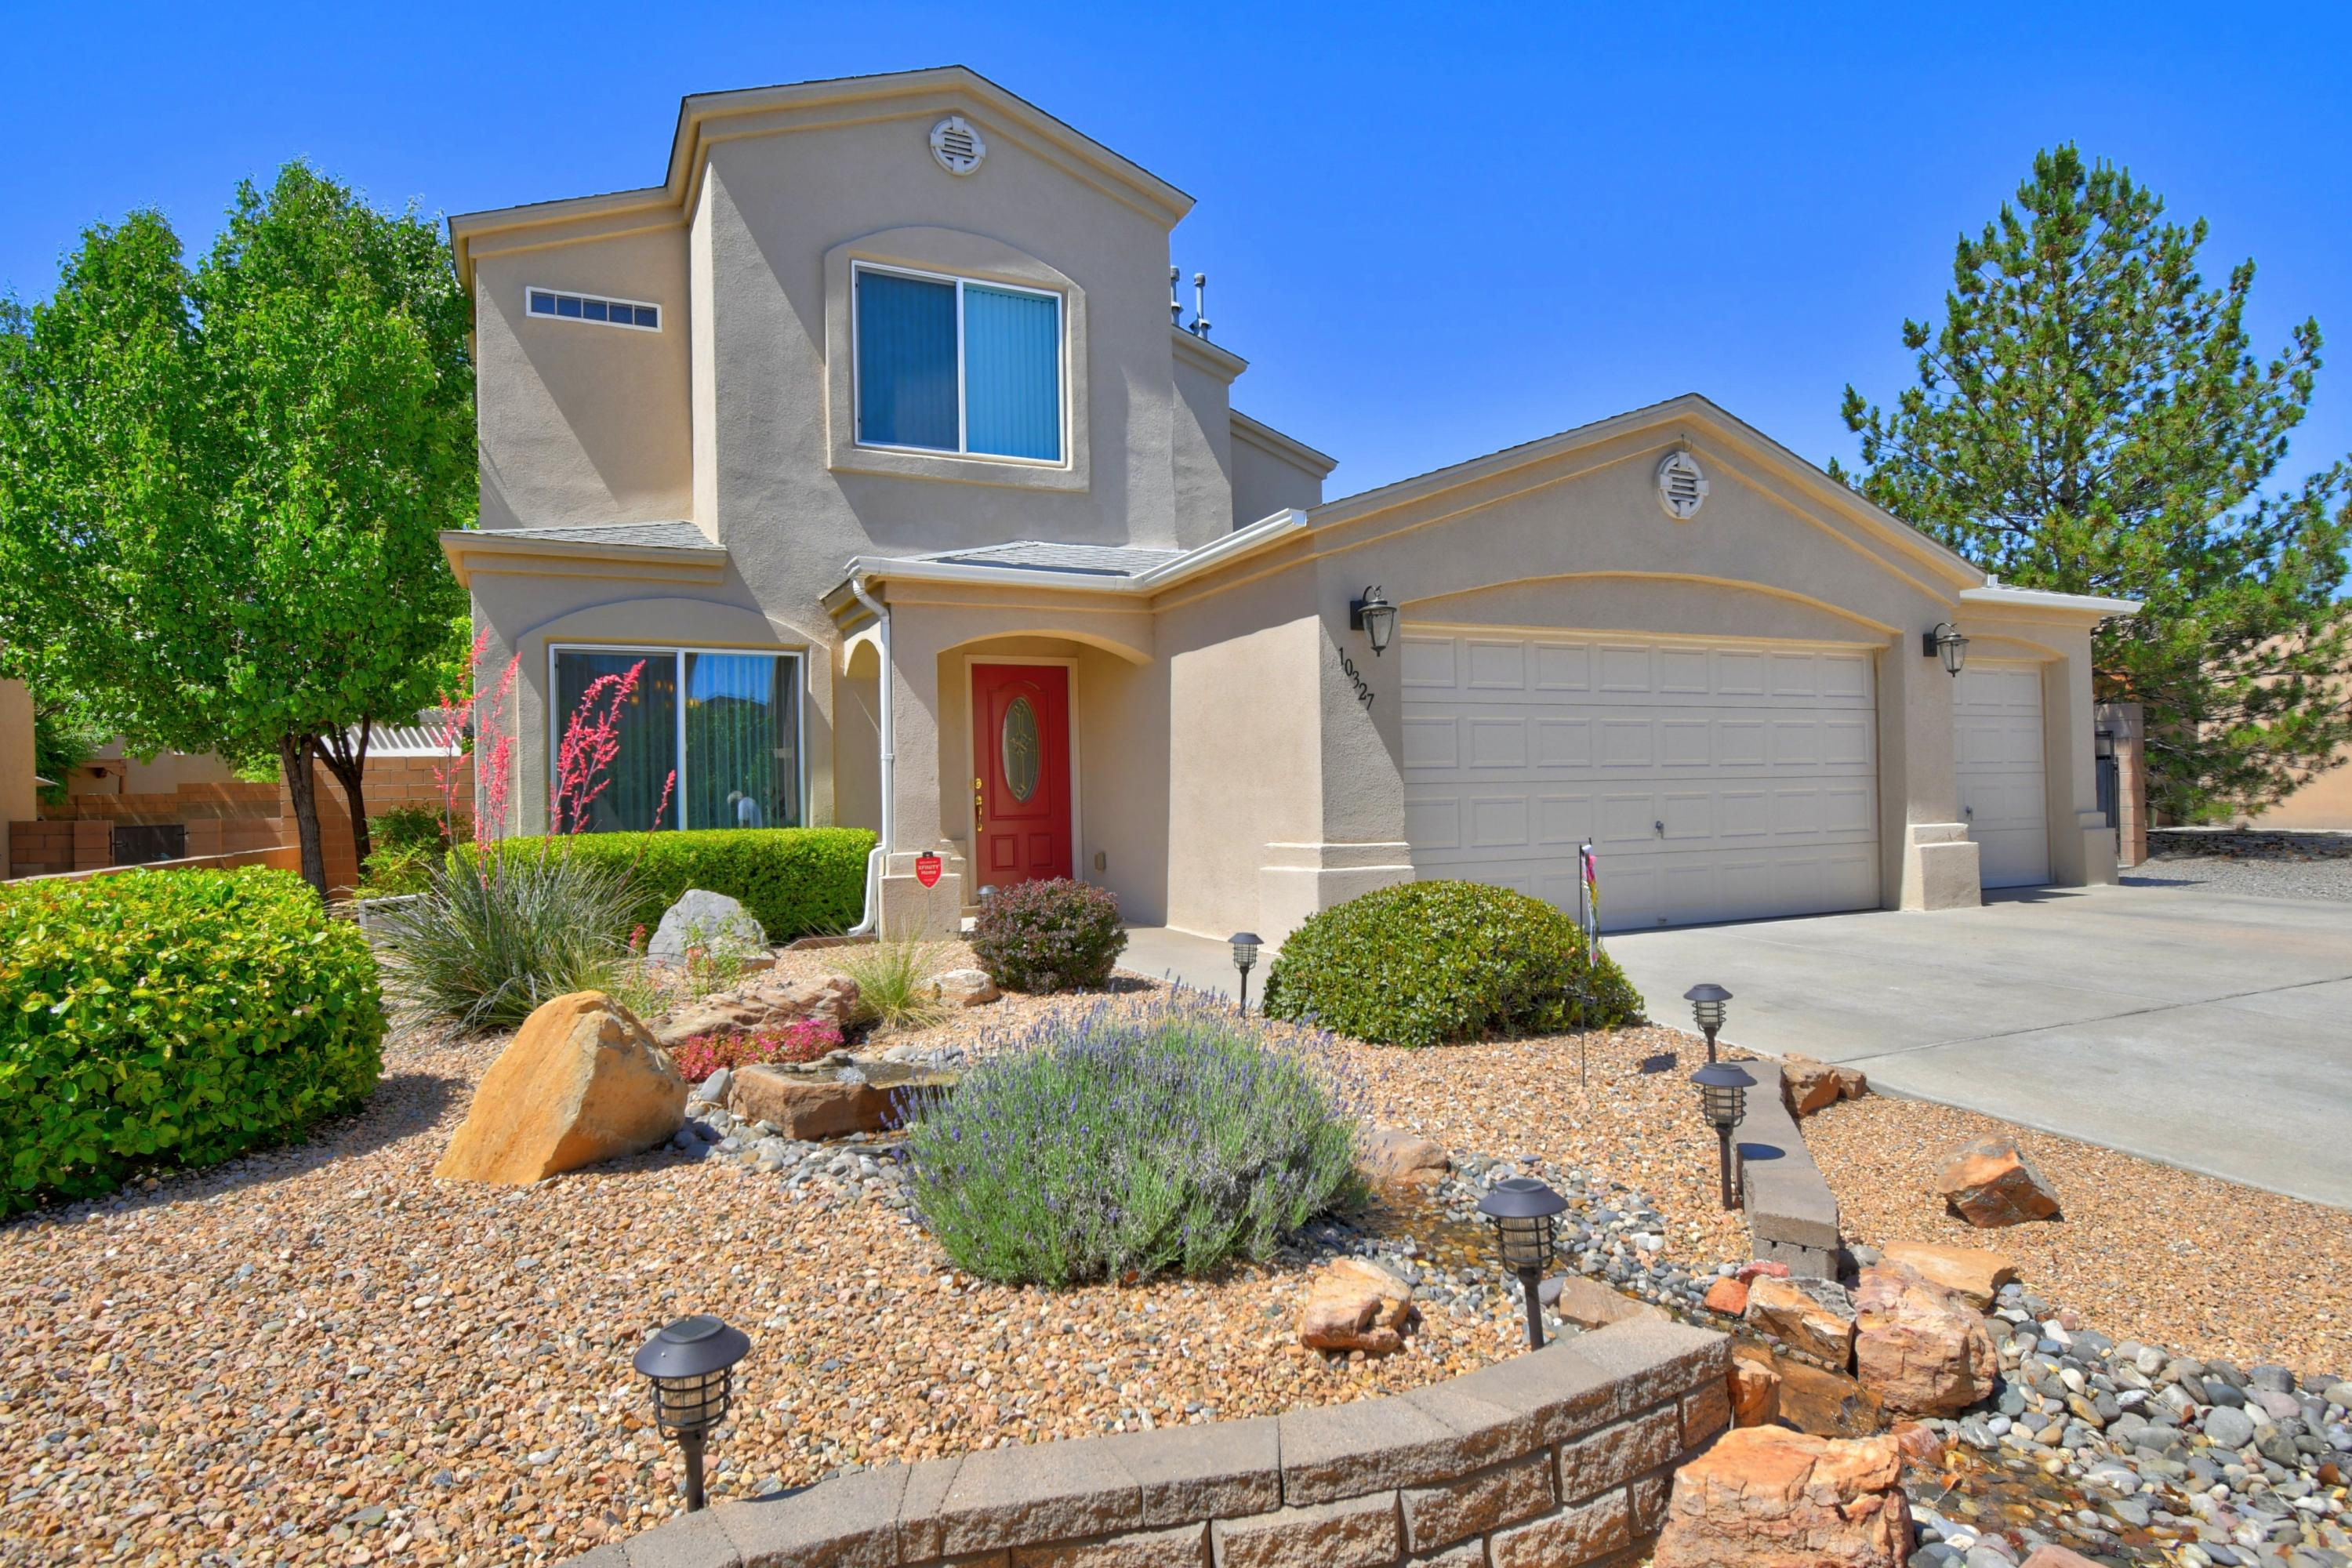 10327 DOCENA Place NW, Albuquerque, NM 87114 - Albuquerque, NM real estate listing